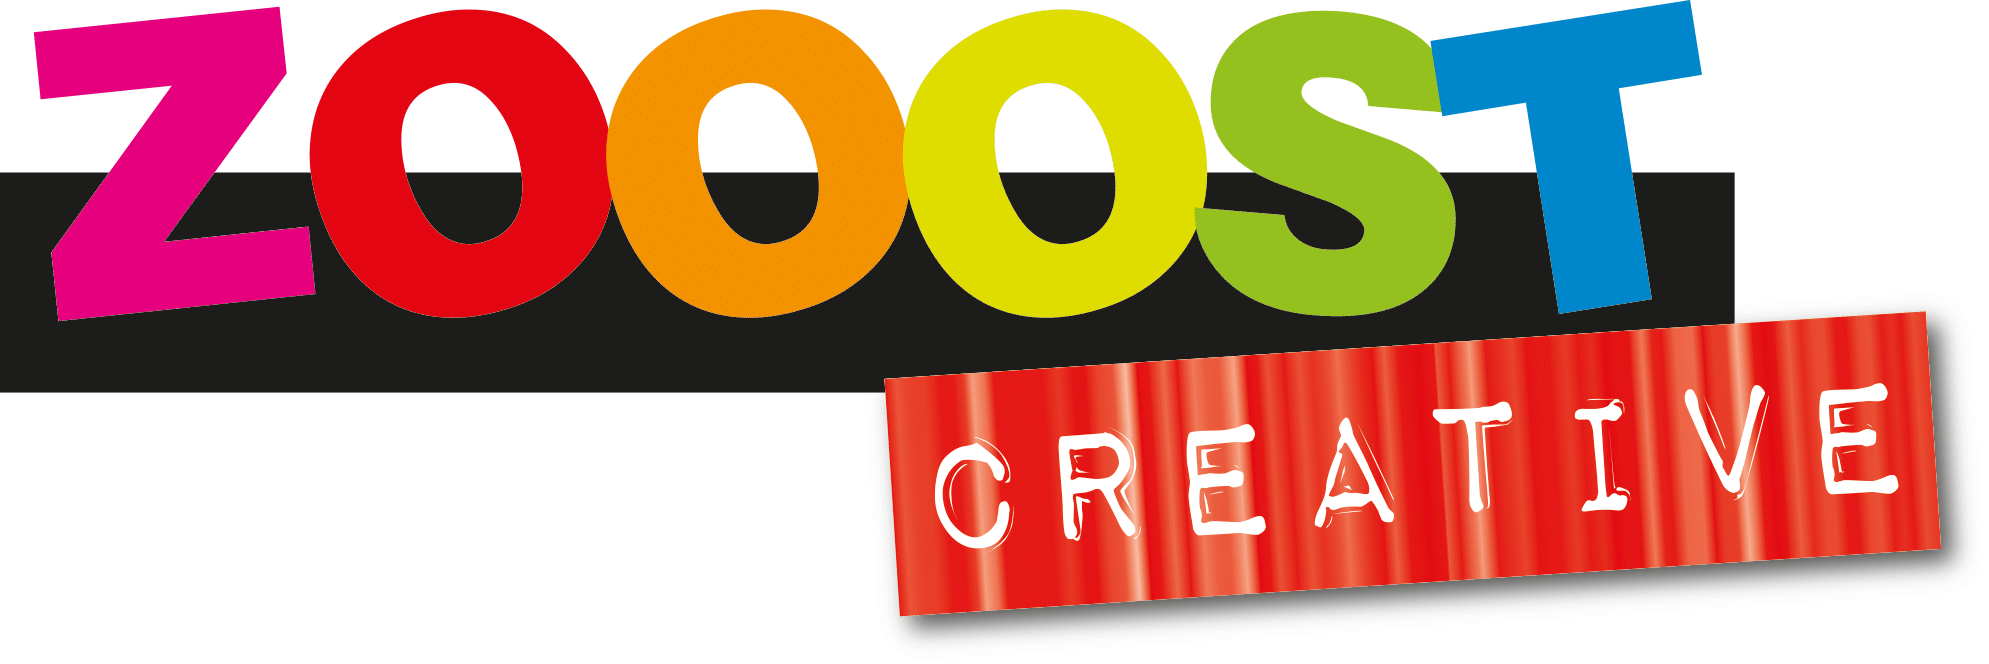 Zooost Creative